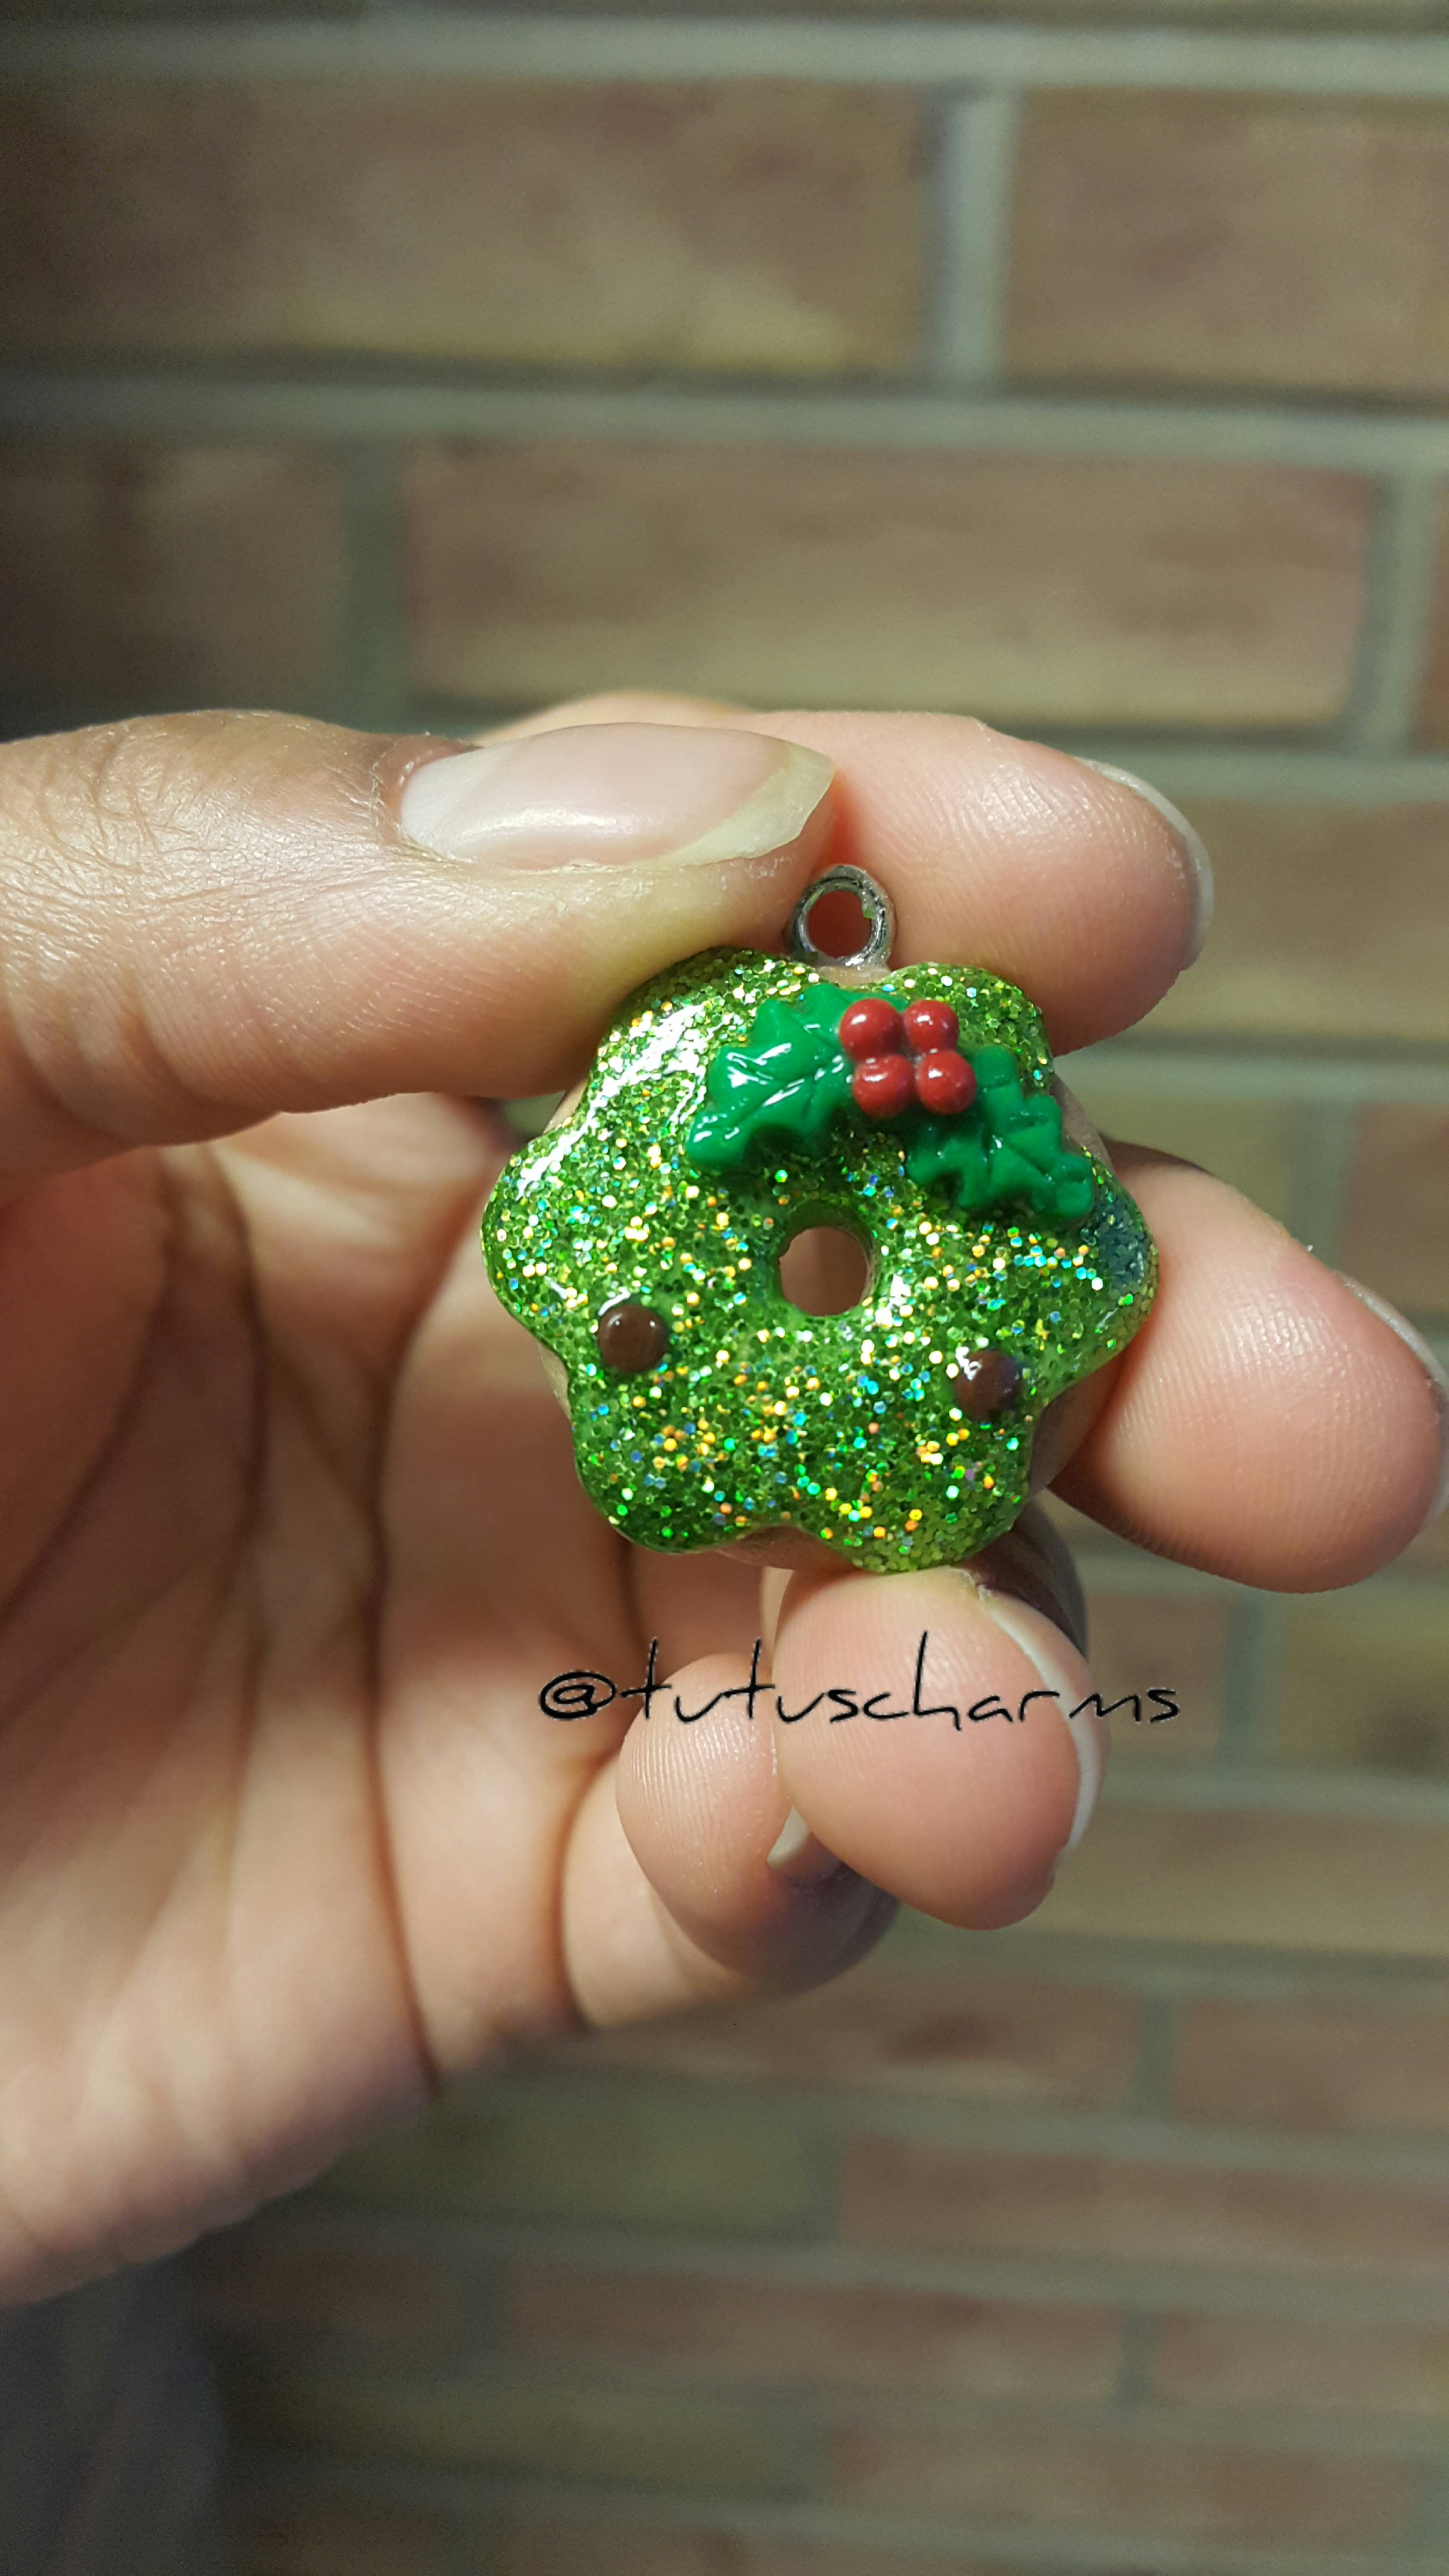 Polymer Clay Christmas Charms.Christmas Holly Hologram Donut Polymer Clay Charm From Tutu S Charms